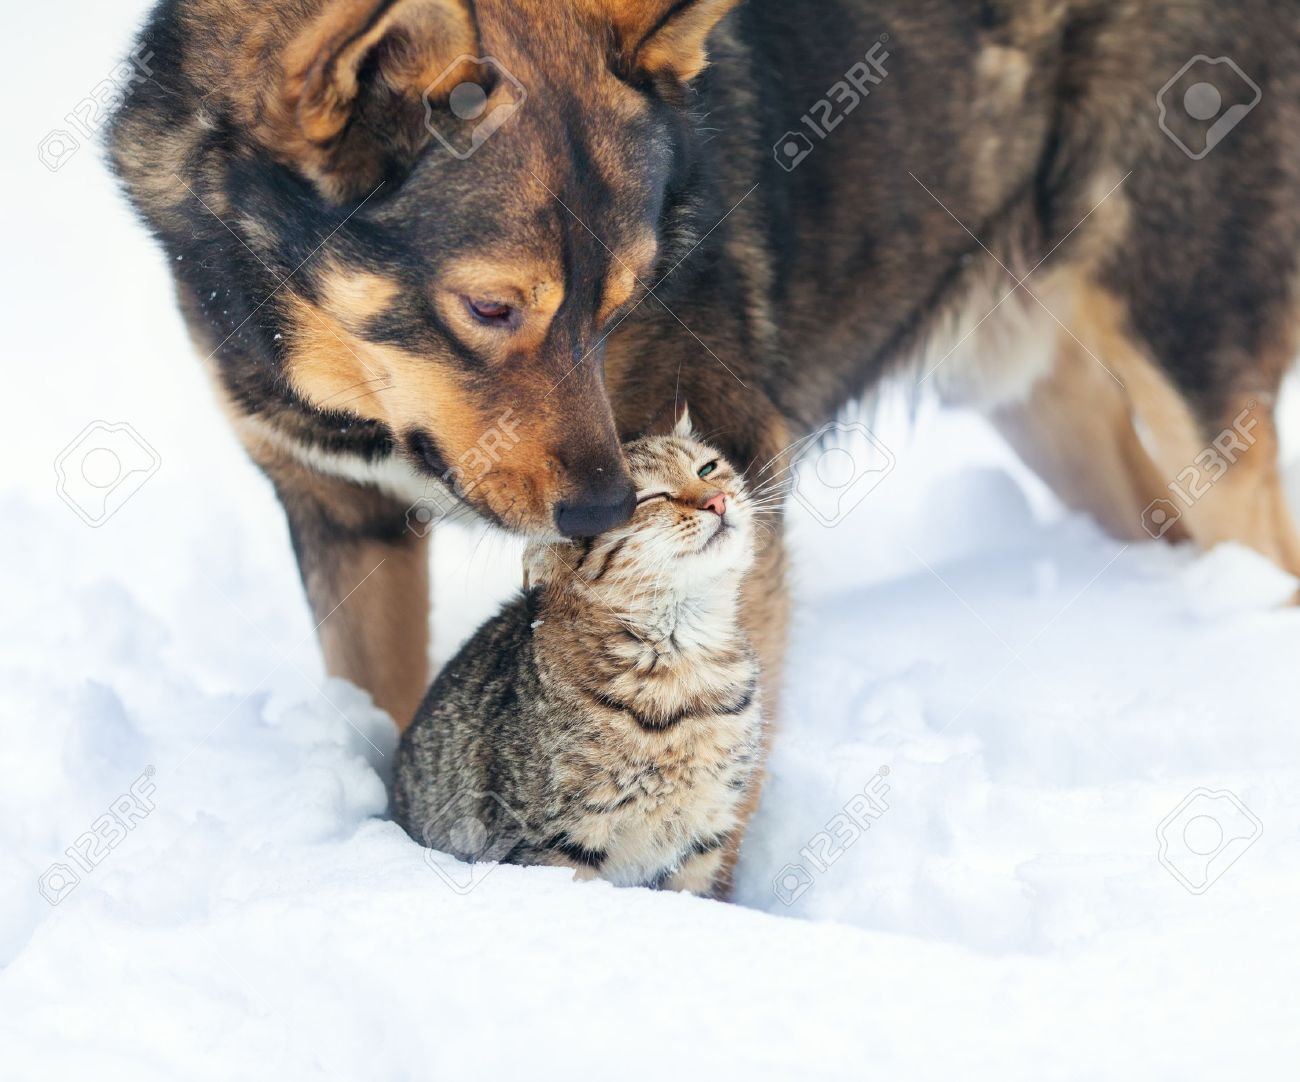 Dog And Cat Playing Together Outdoor In The Snow Stock Photo